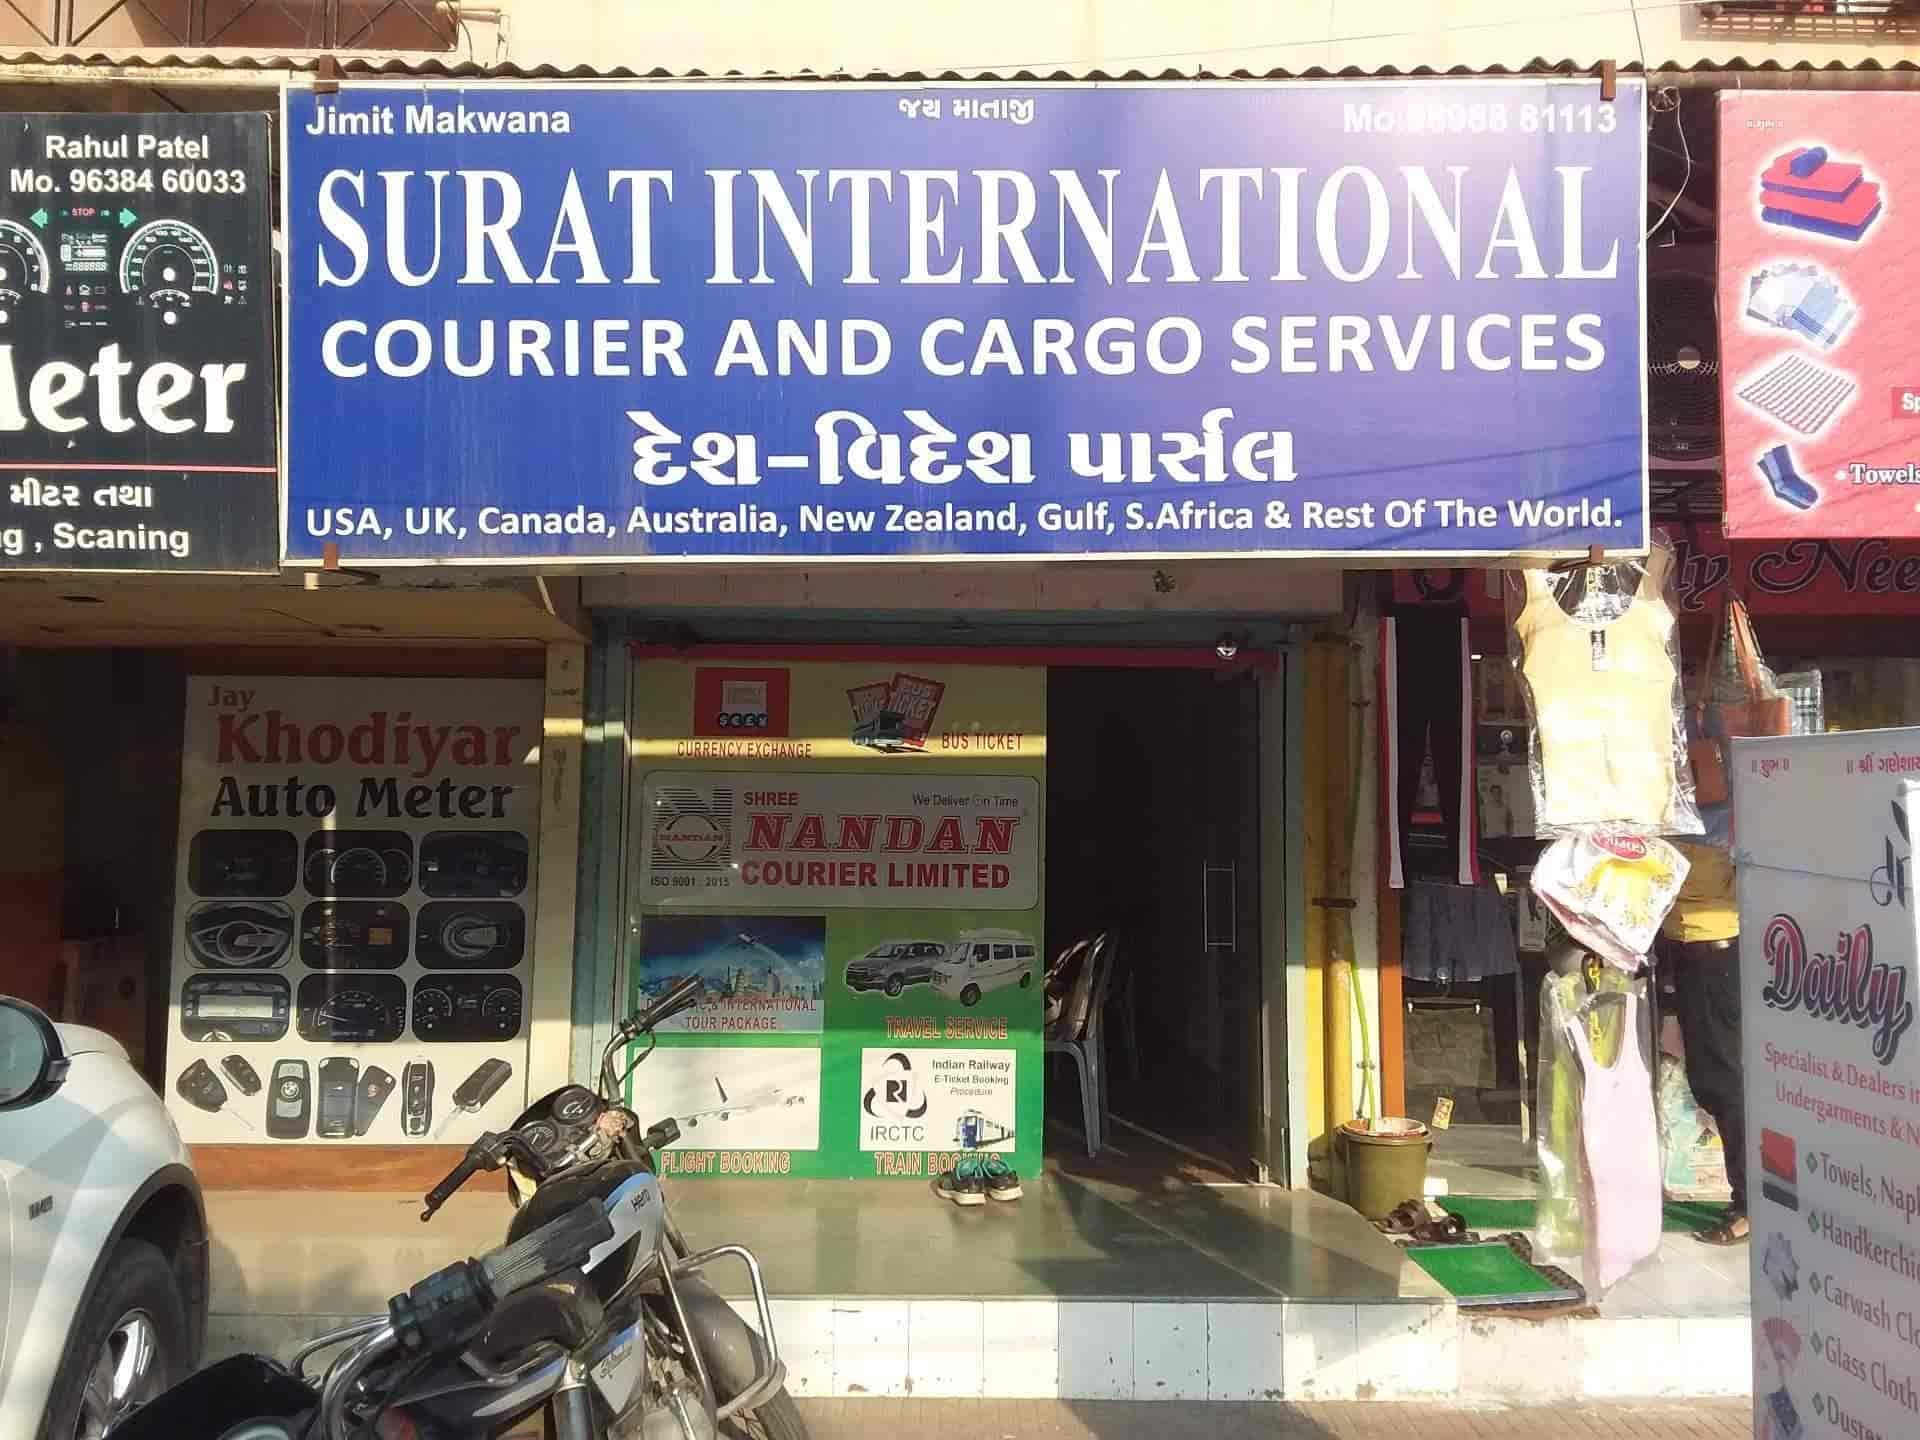 Surat International Courier And Cargo Services Adajan Road Courier Services In Surat Justdial